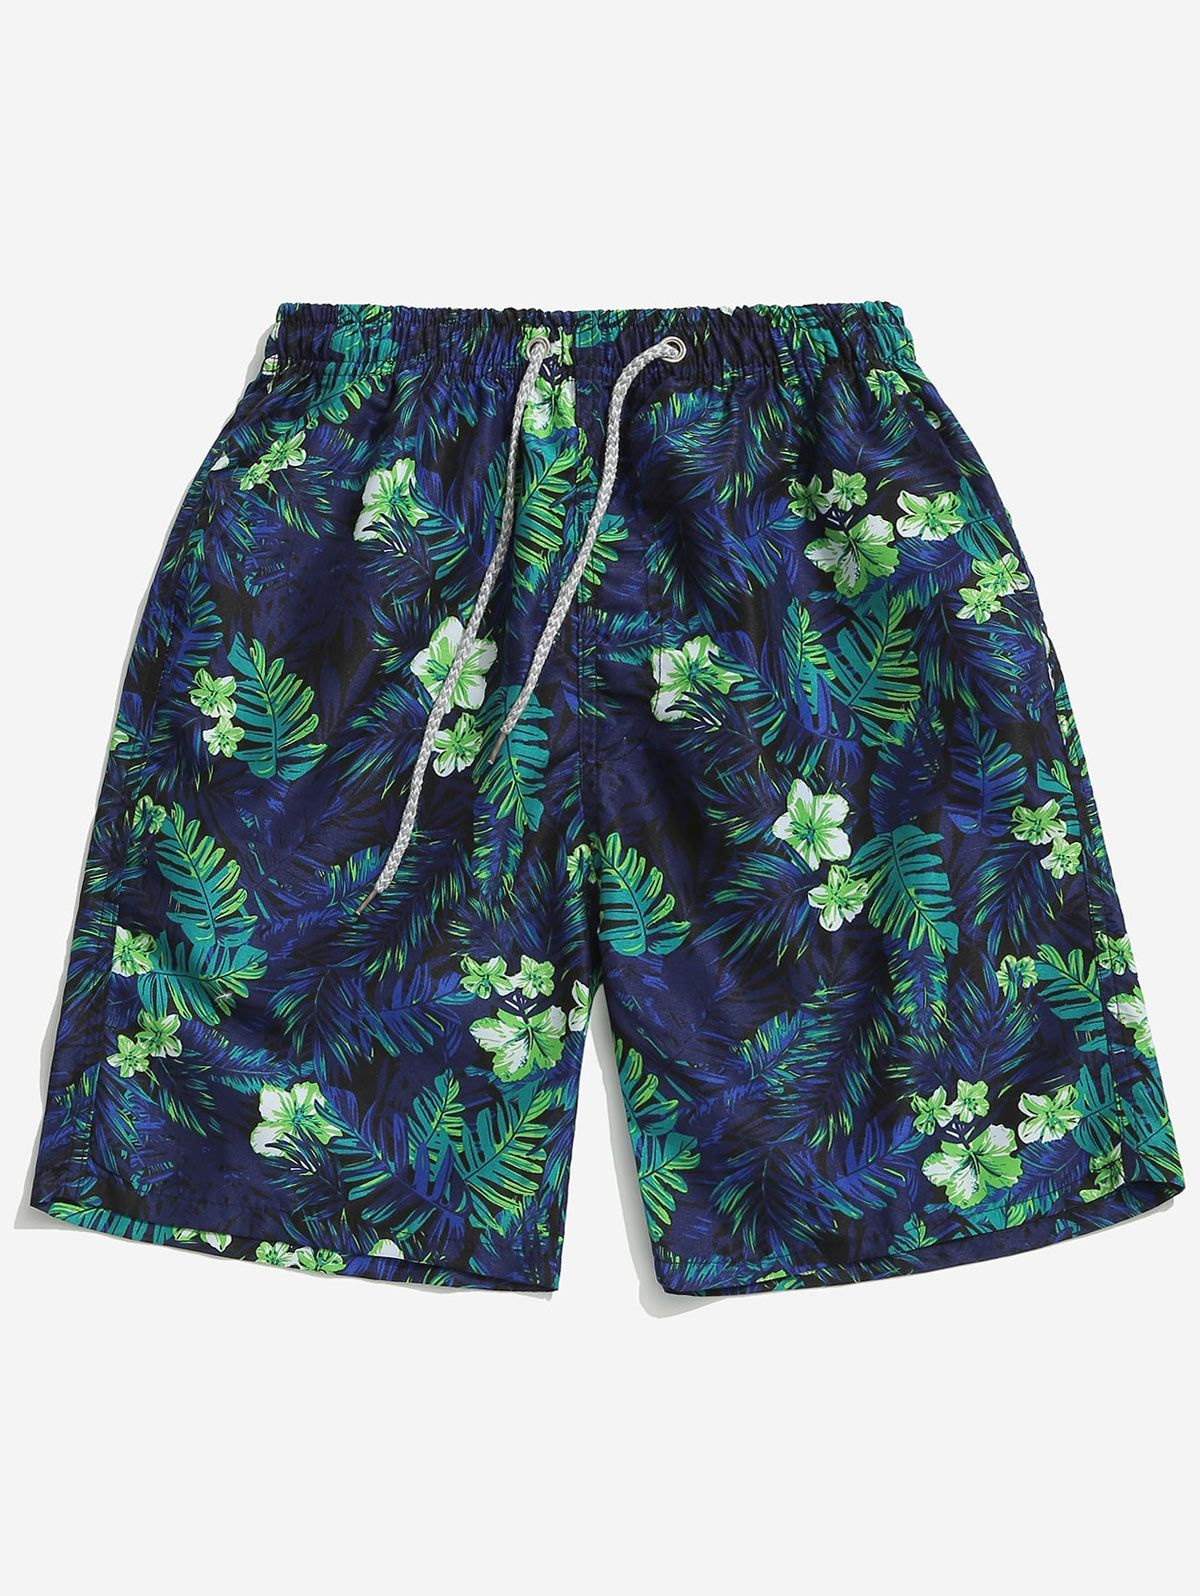 Floral Plant Leaves Print Beach Shorts